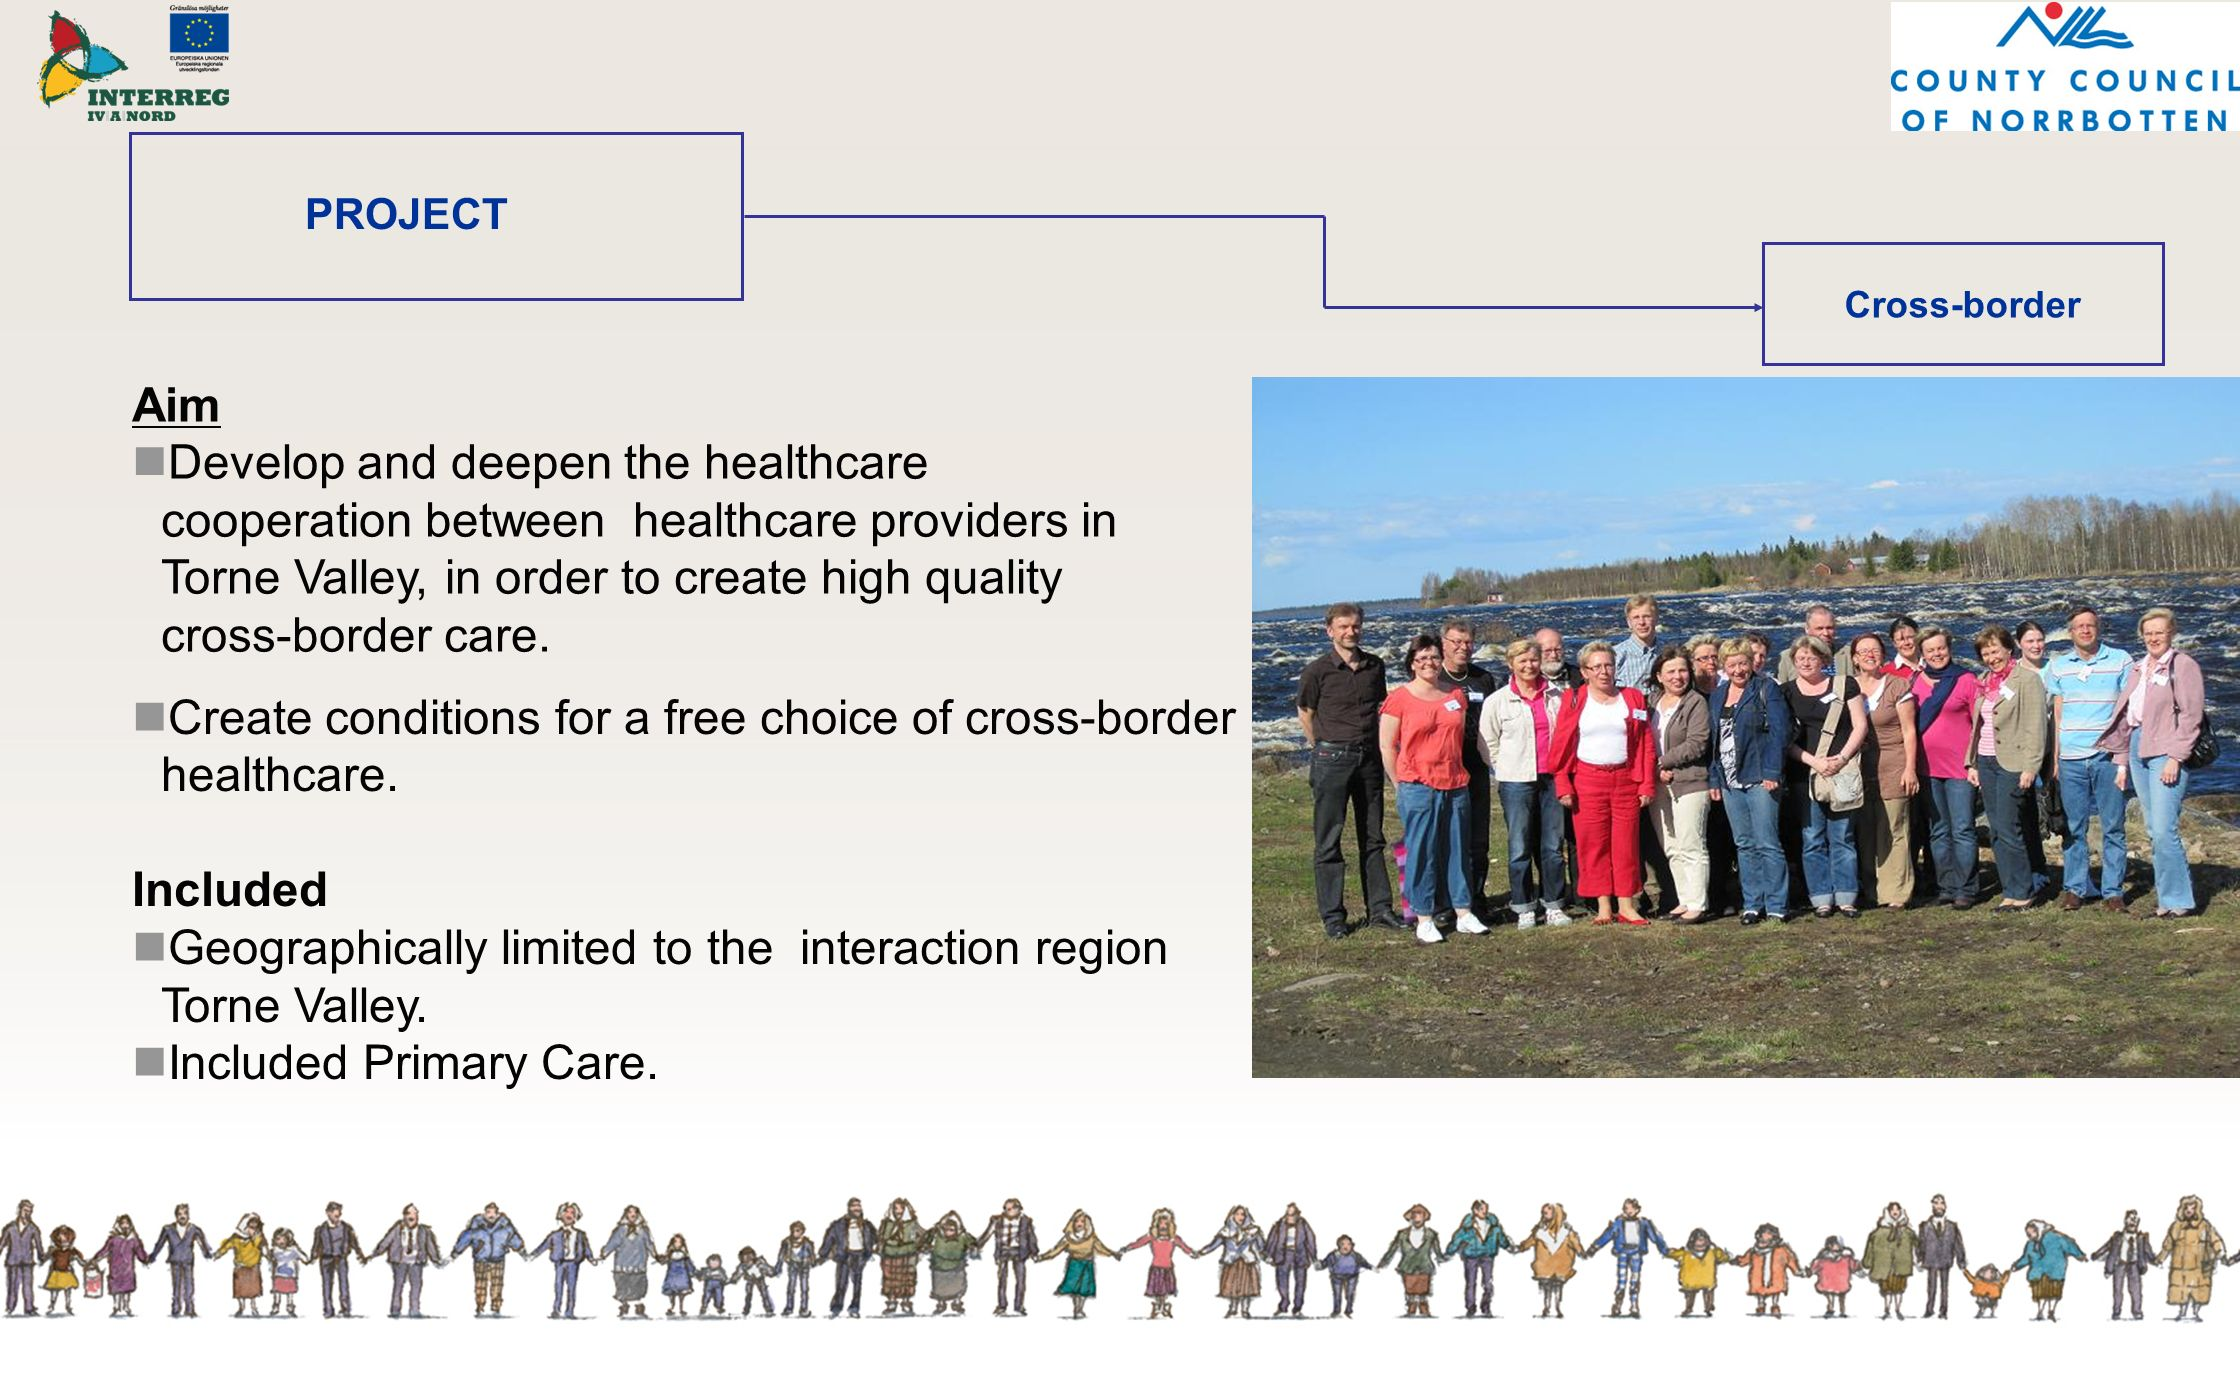 Create conditions for a free choice of cross-border healthcare.